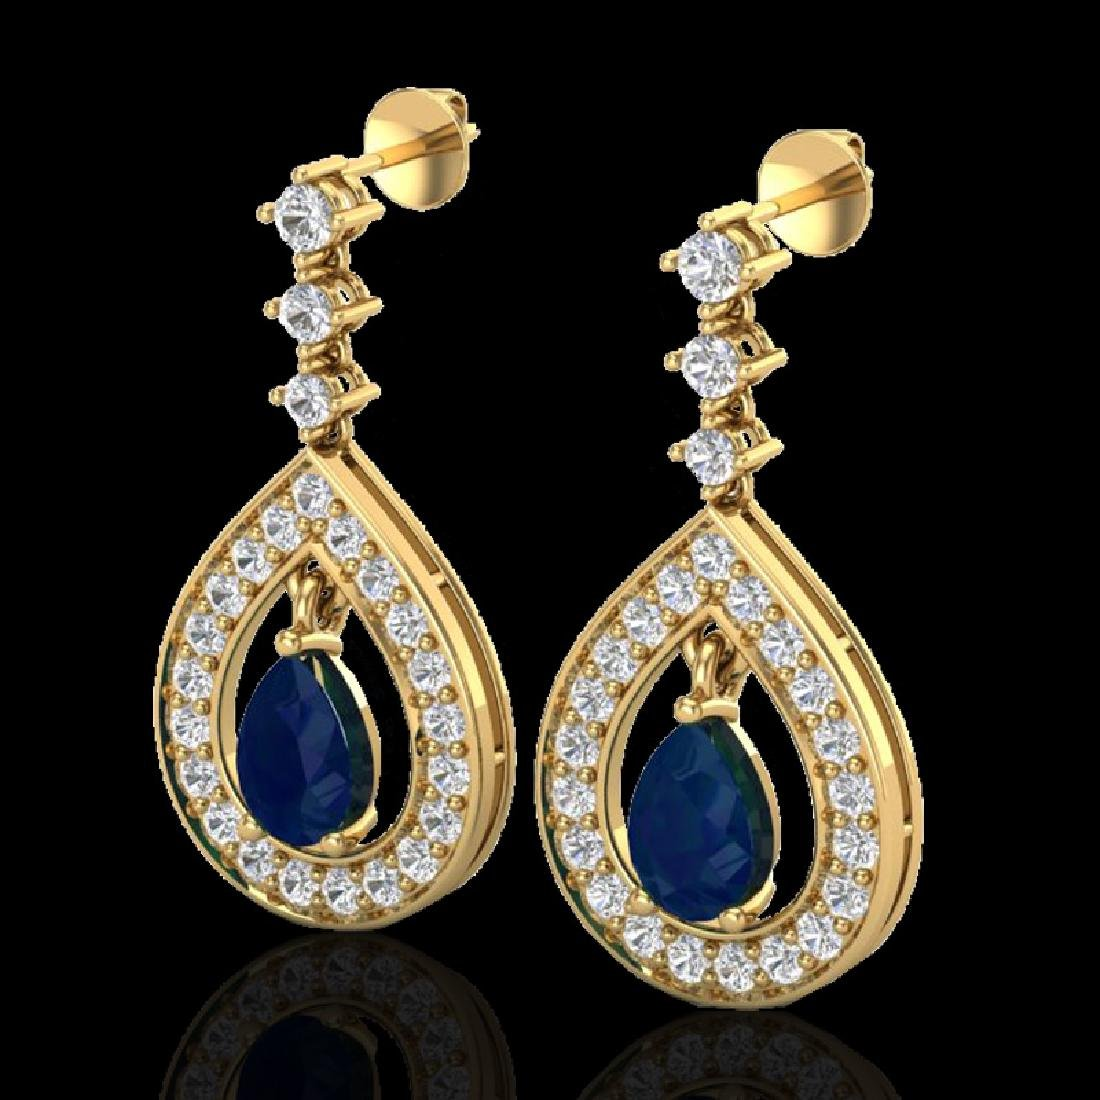 2.25 CTW Sapphire & Micro Pave VS/SI Diamond Earrings